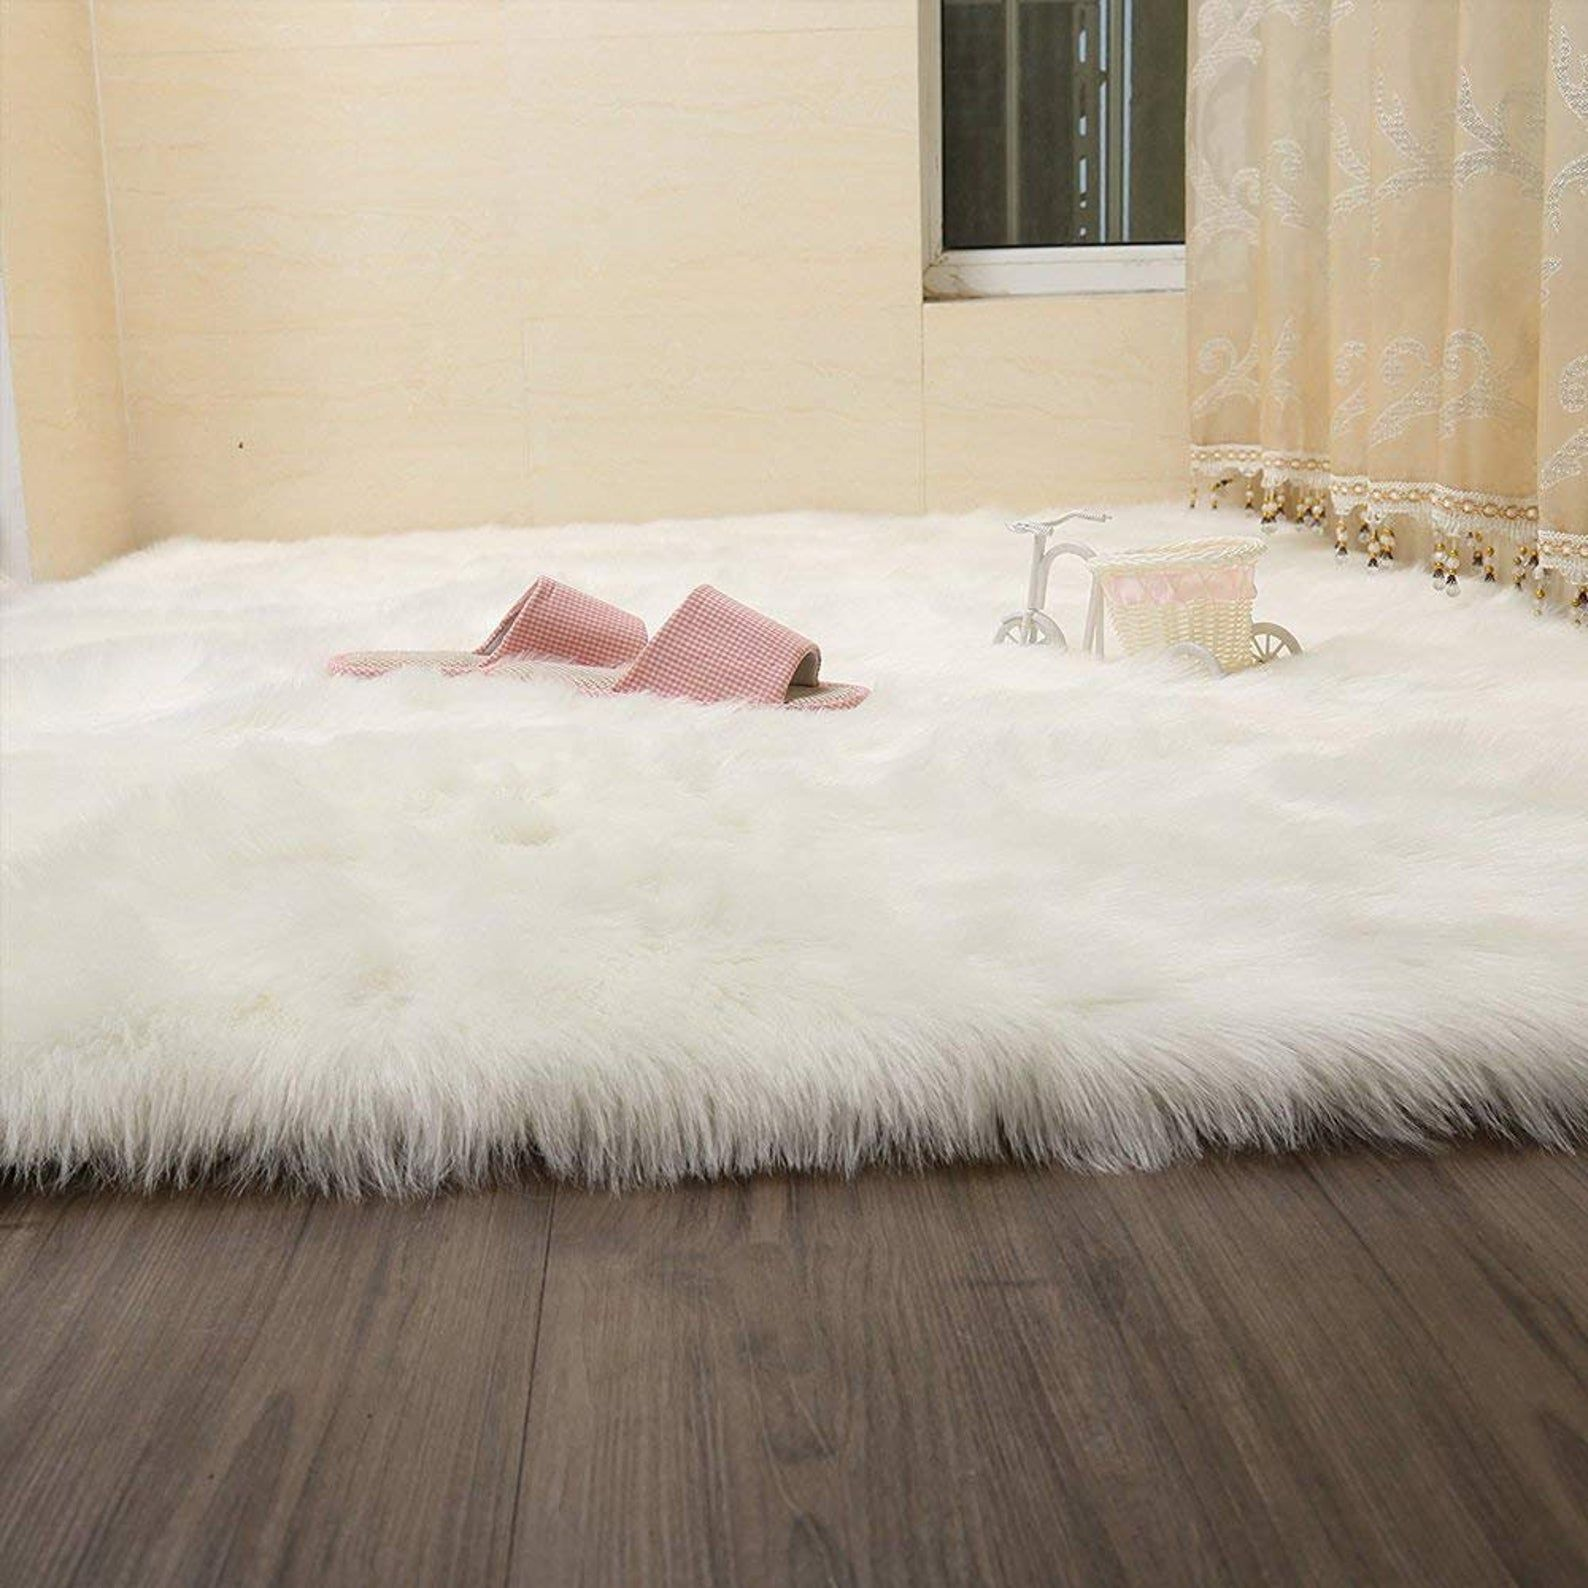 White Plush Faux Fur Area Rug Floor Shaggy Carpet Rugs For Etsy In 2020 With Images